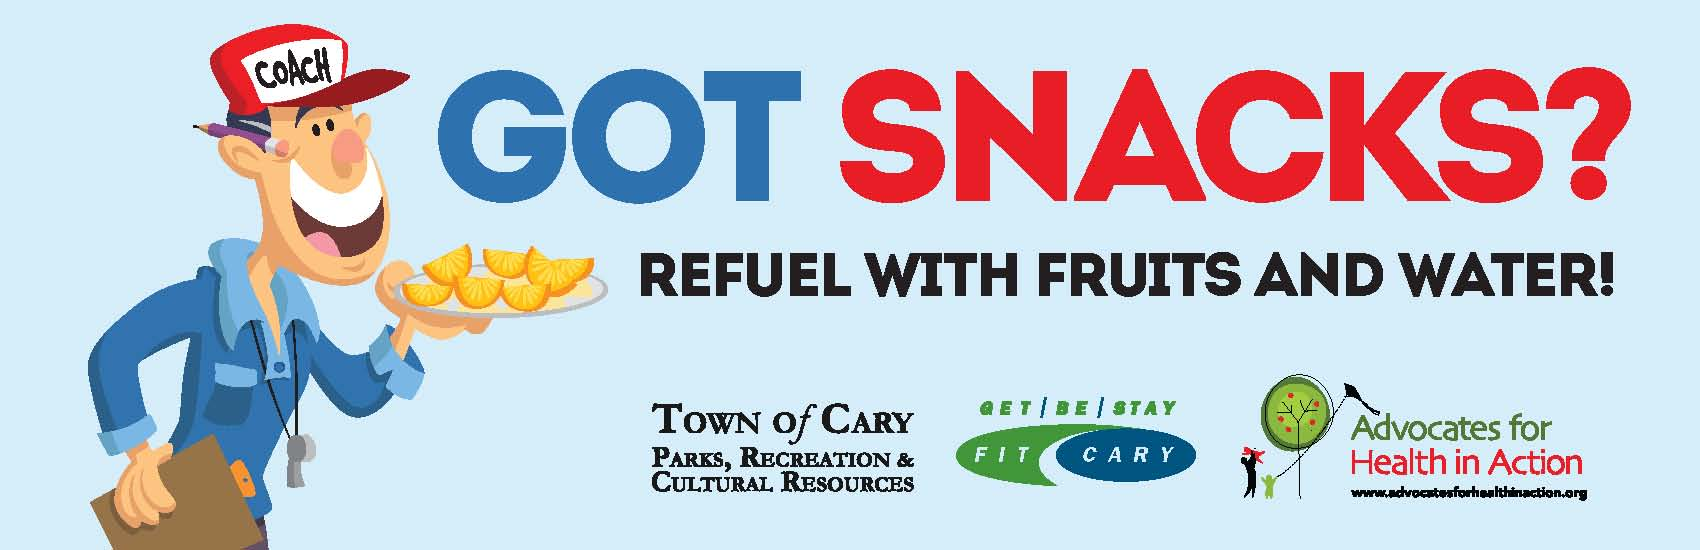 Got snacks? Refuel with fruits and water?